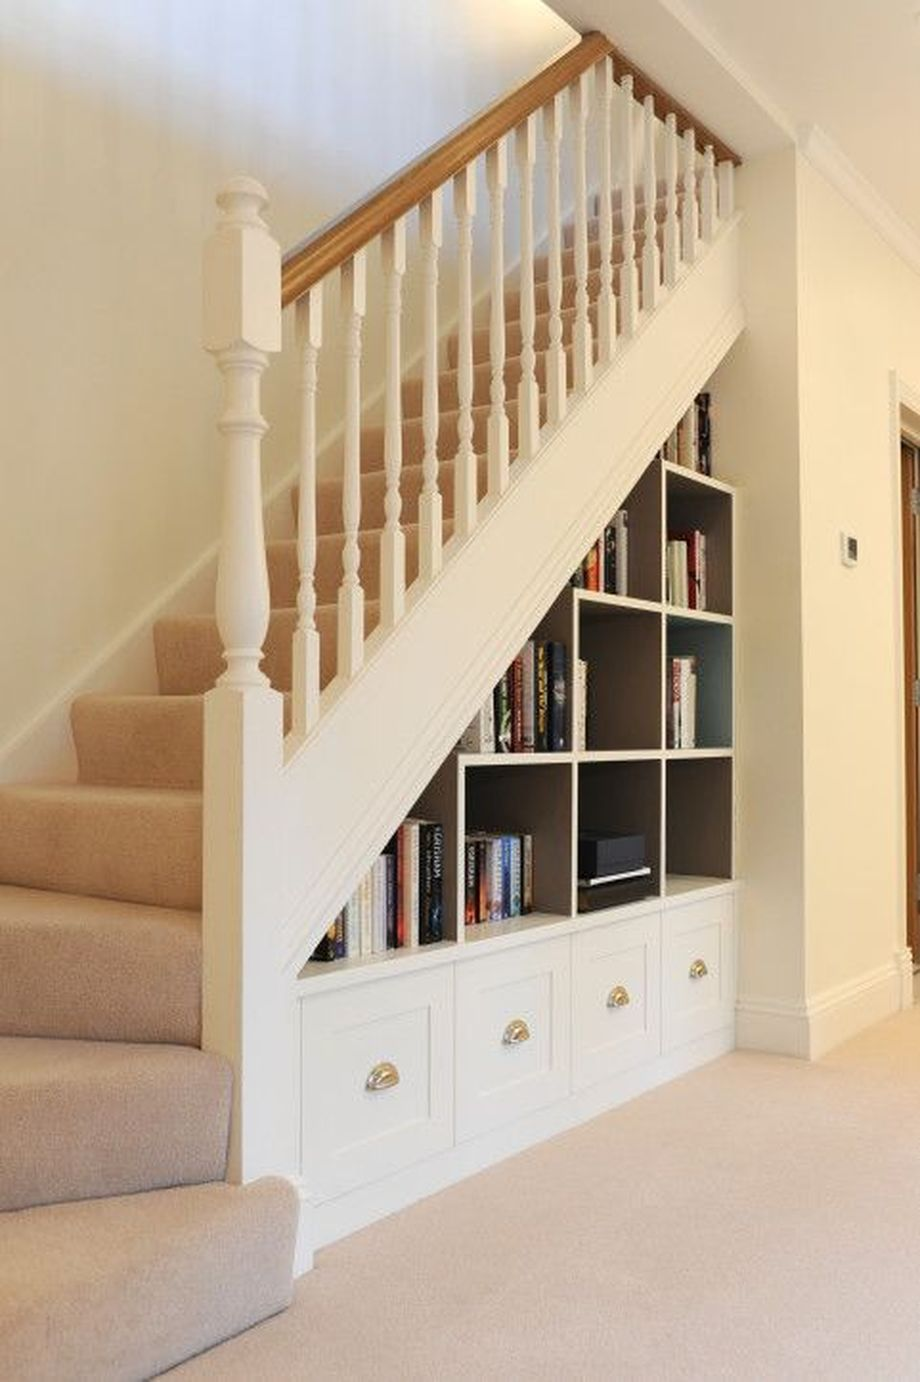 Best 90 Cool Ideas To Make Or Remodel Storage Under Stairs 640 x 480